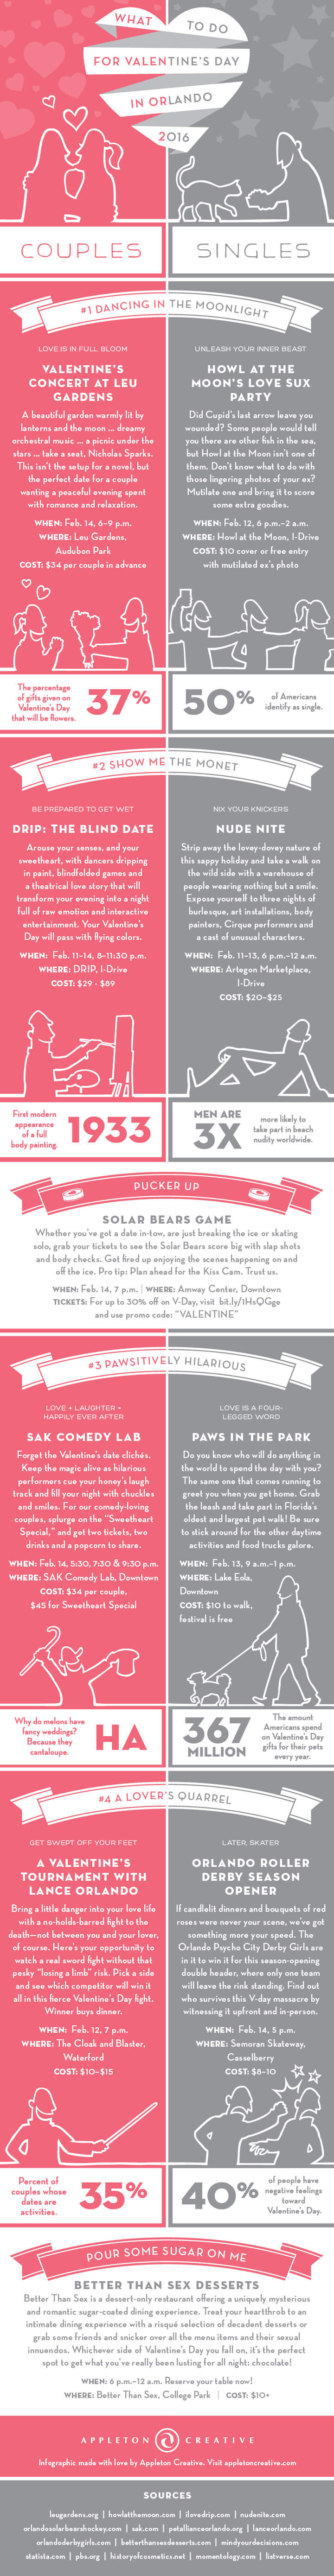 What to do for Valentine's Day infographic